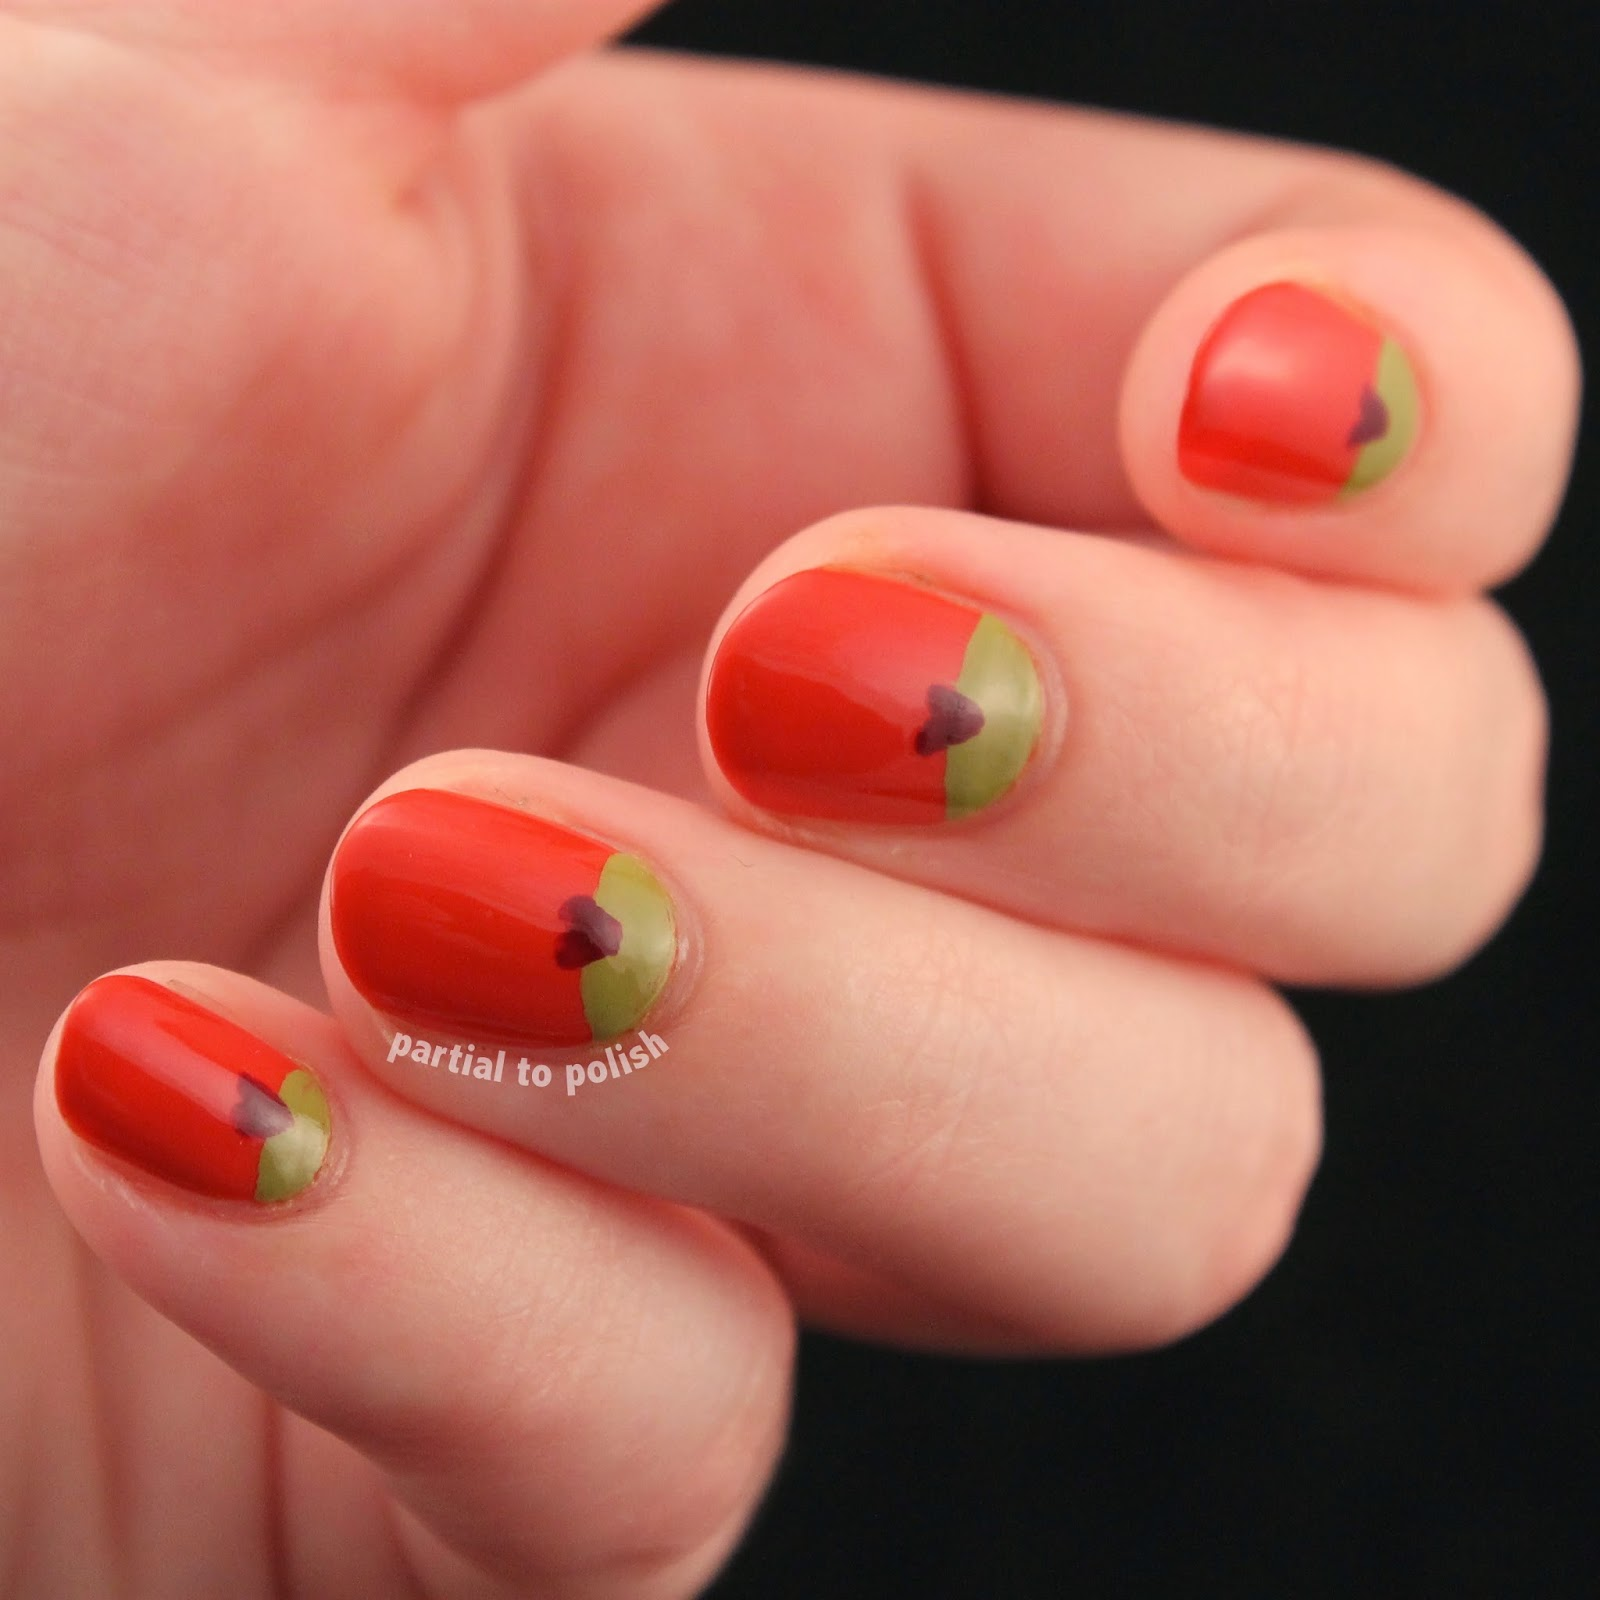 Half Moon Nail Art Plus Little Hearts: a Recreation of a Gorgeous So Nailicious Design!